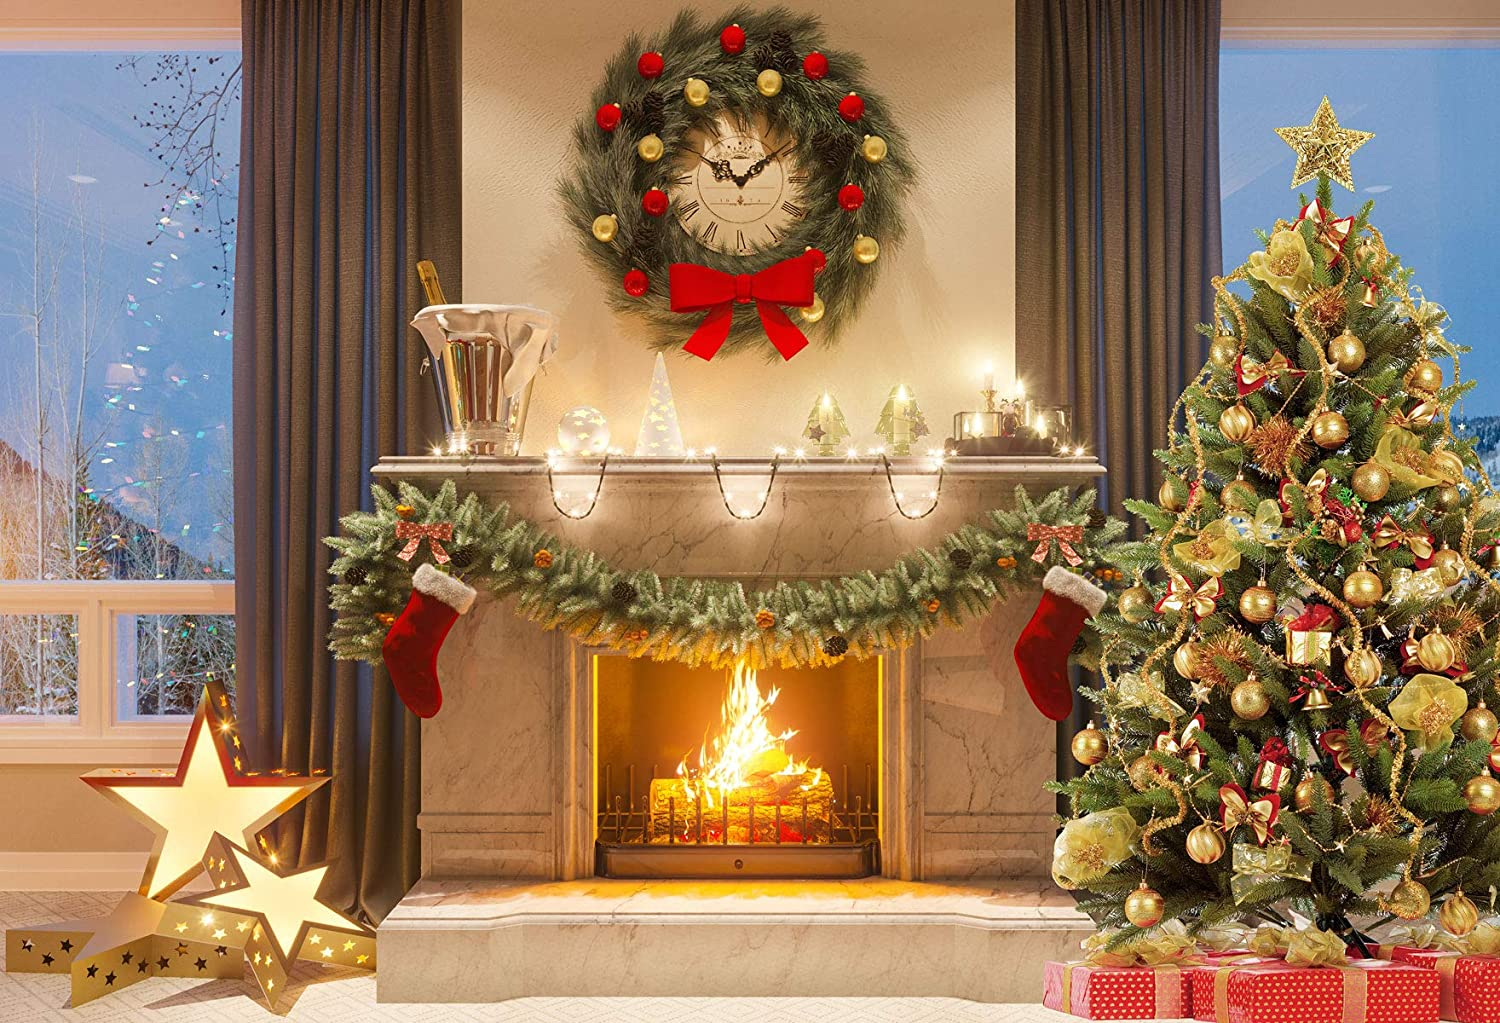 10x6.5 ft Christmas Backdrop Photography Glod No Wrinkle Seamless Photo Booth Props Backdrop for Photoshoot